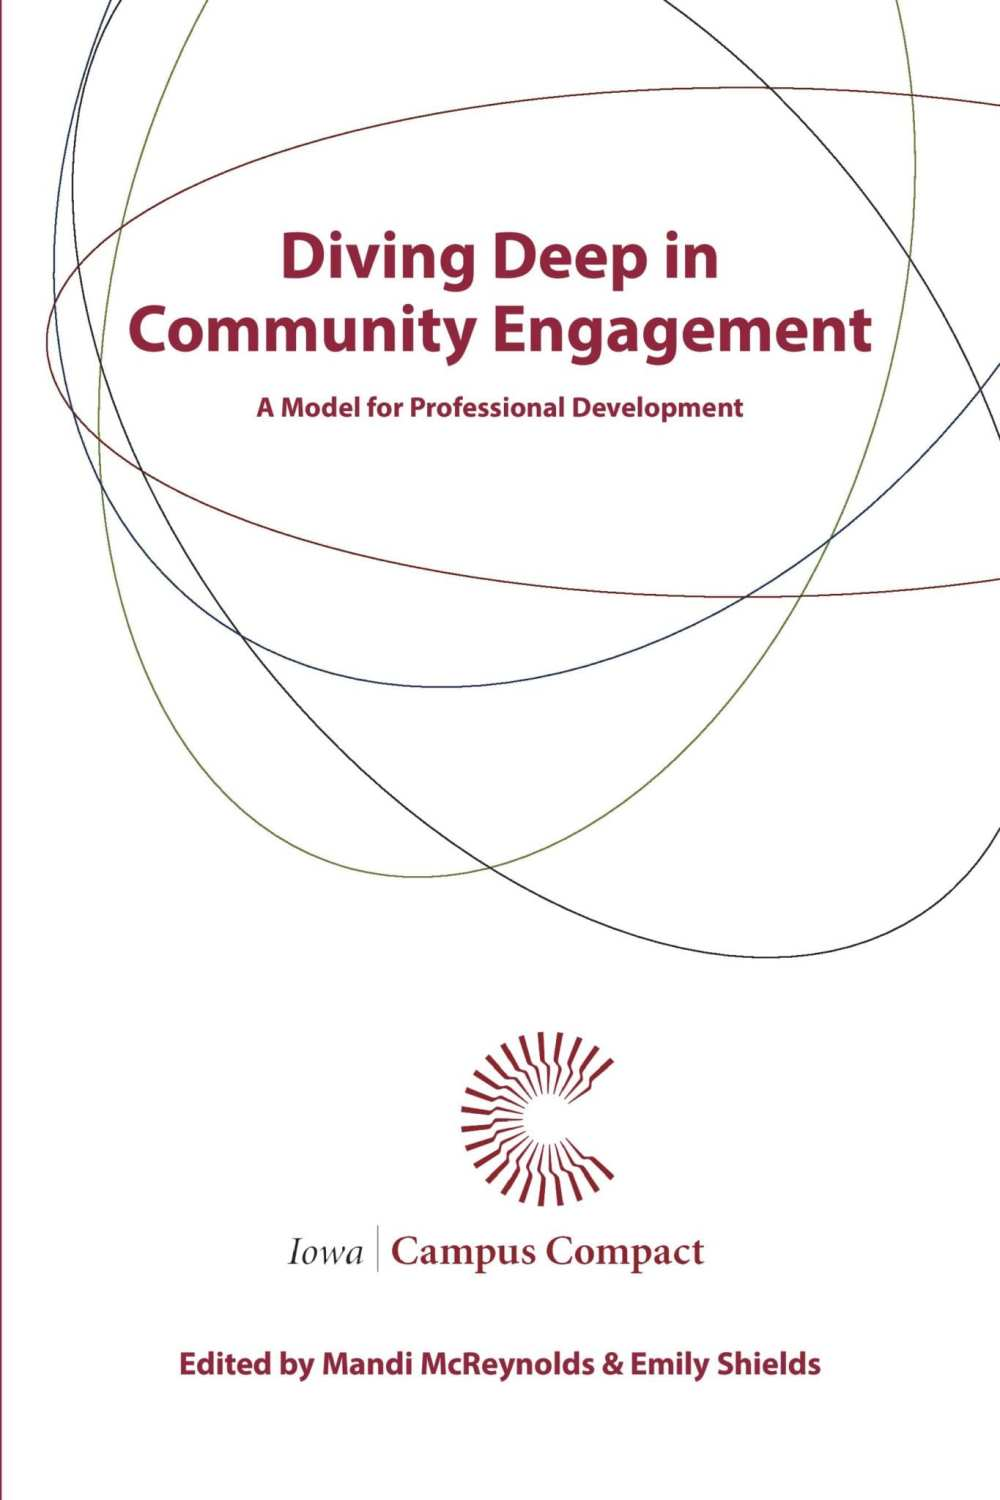 medium resolution of diving deep in community engagement a model for professional development campus compact